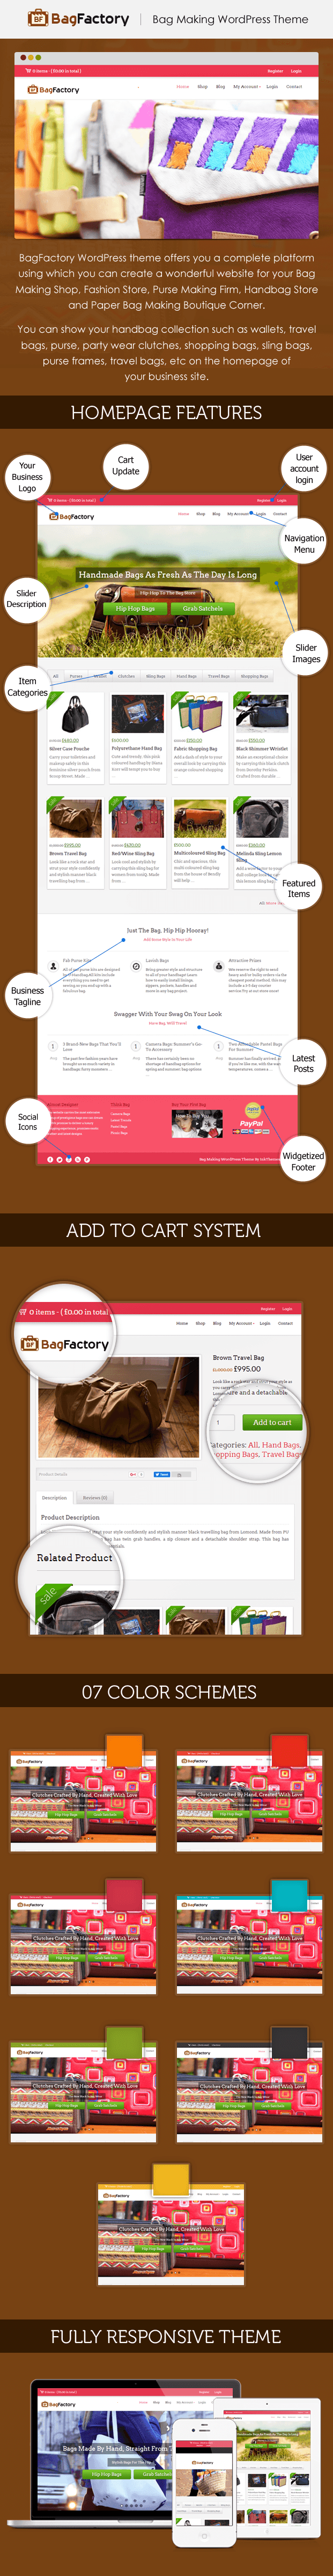 Bag making handbag collection wordpress theme inkthemes for Making wordpress templates